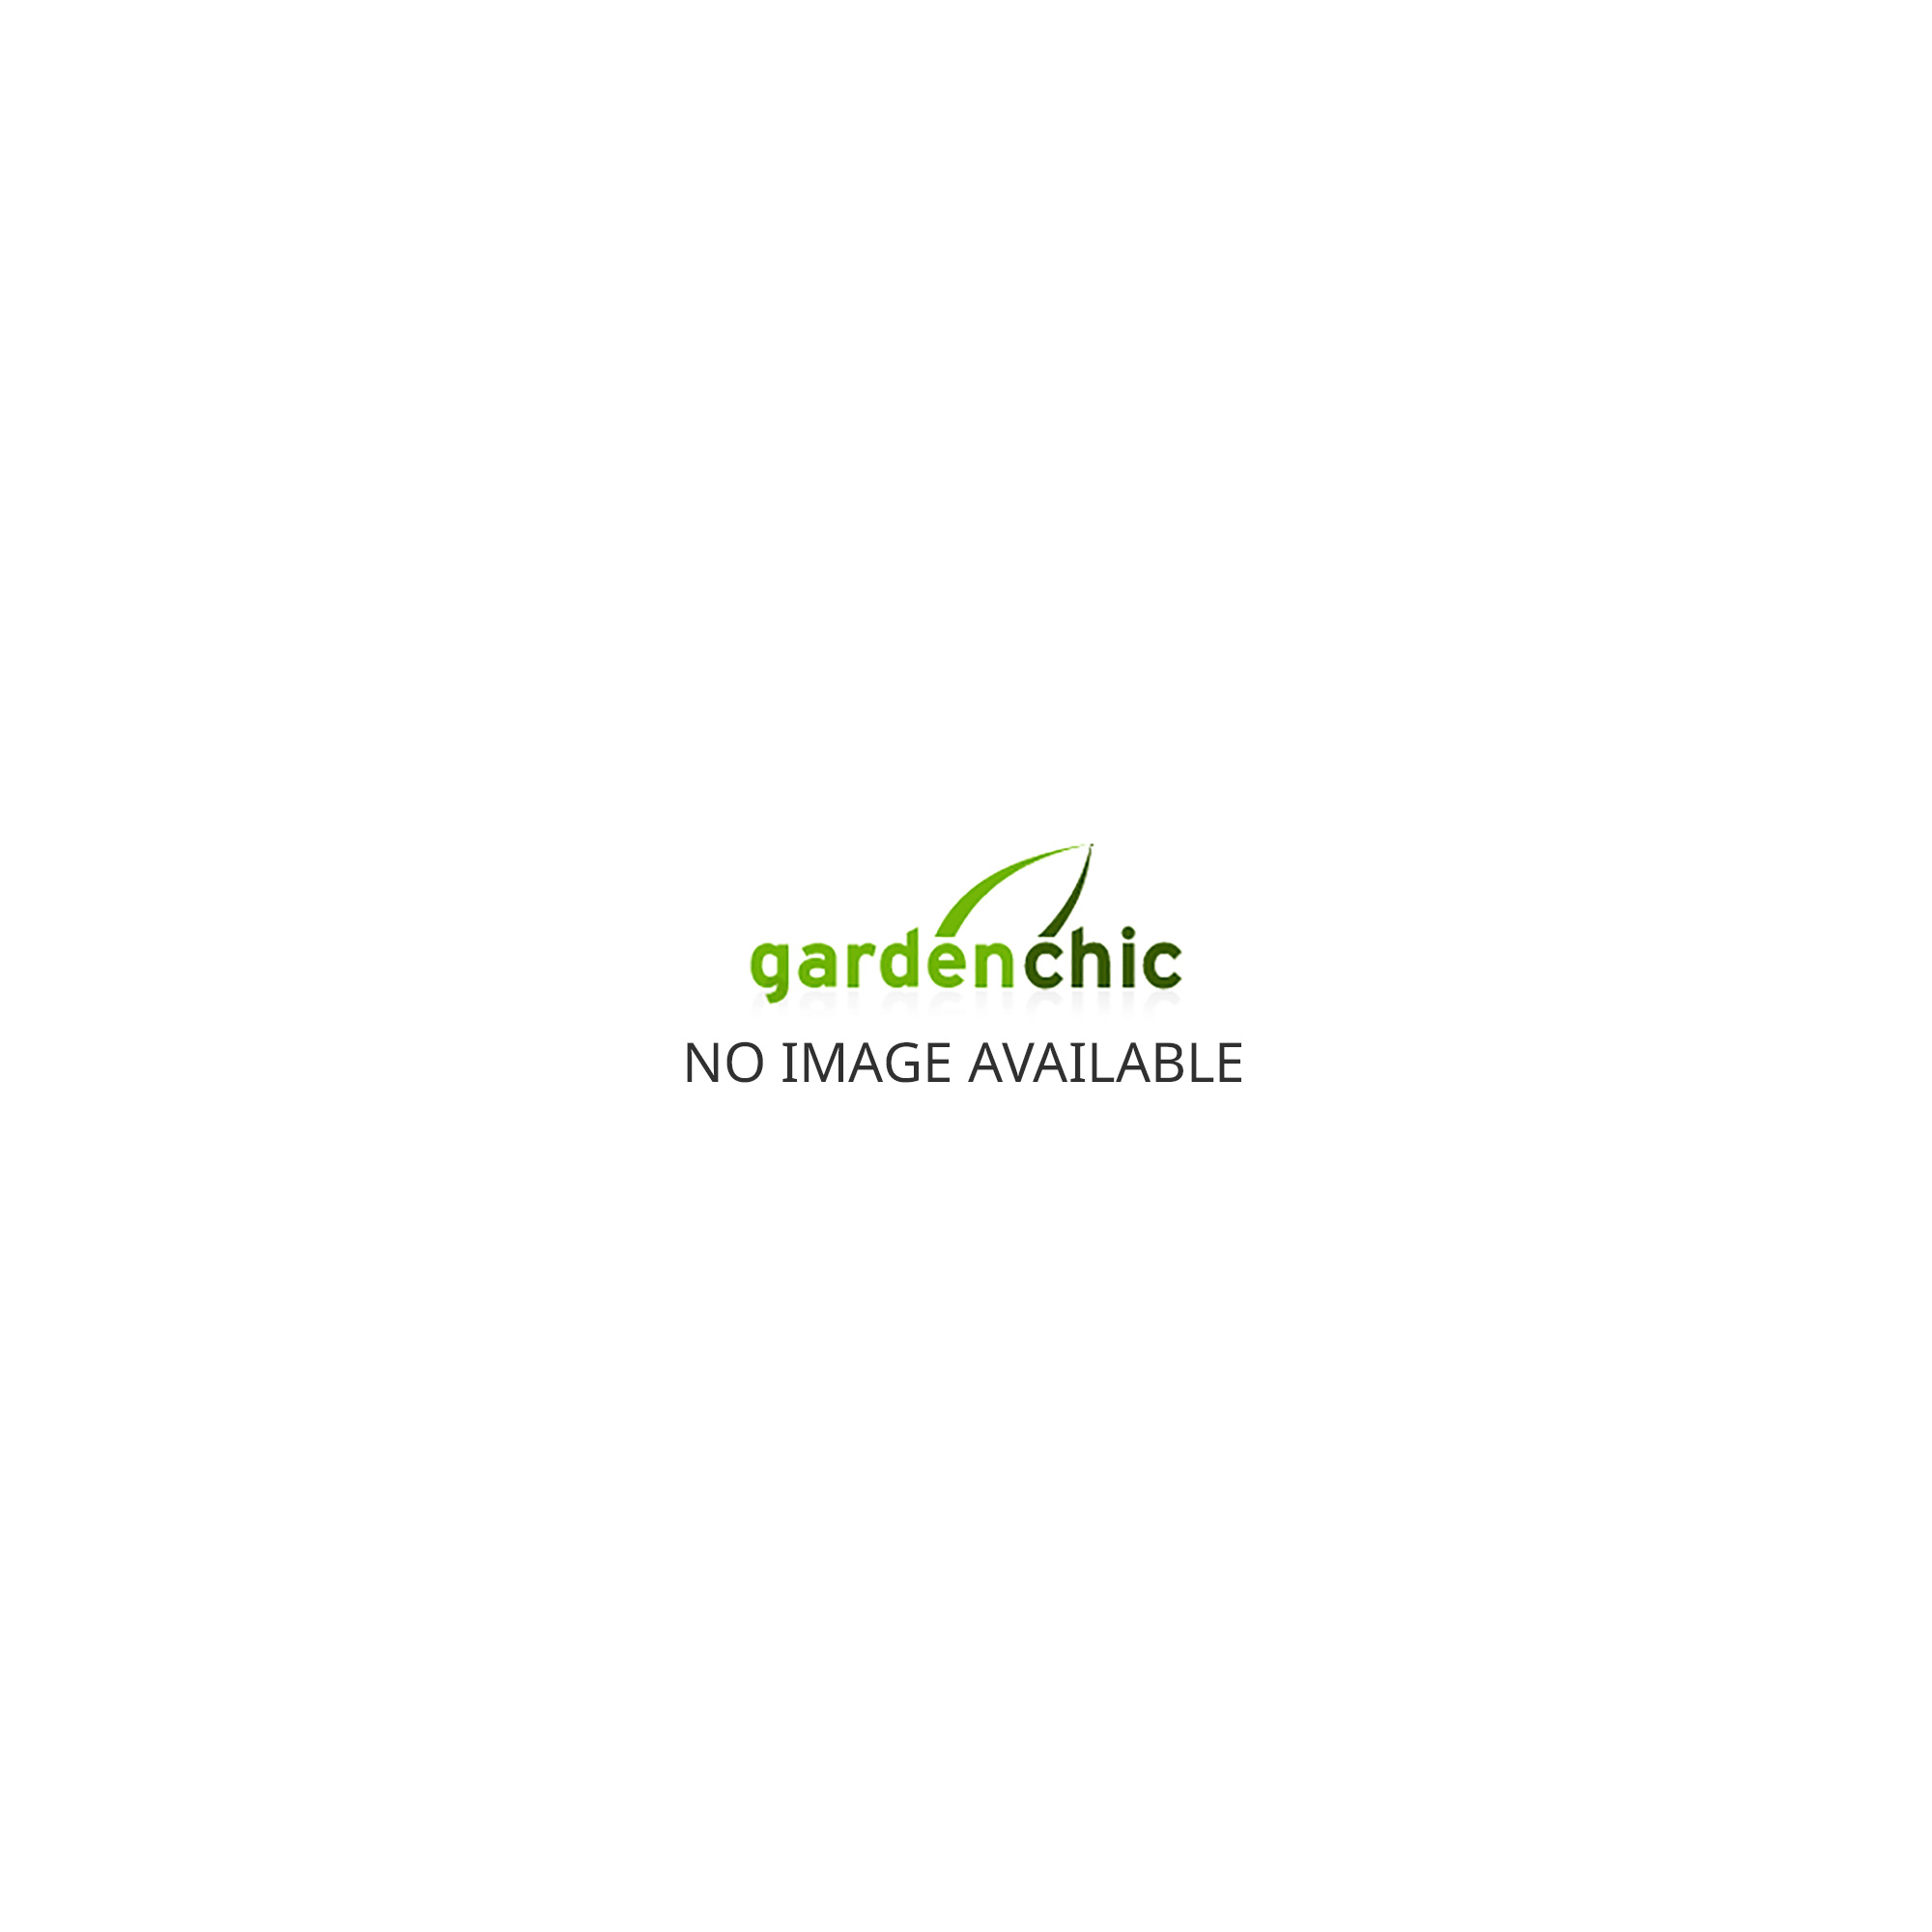 Avesbury Log Cabin 3 Sizes 7x7 / 8x8 / 9x9